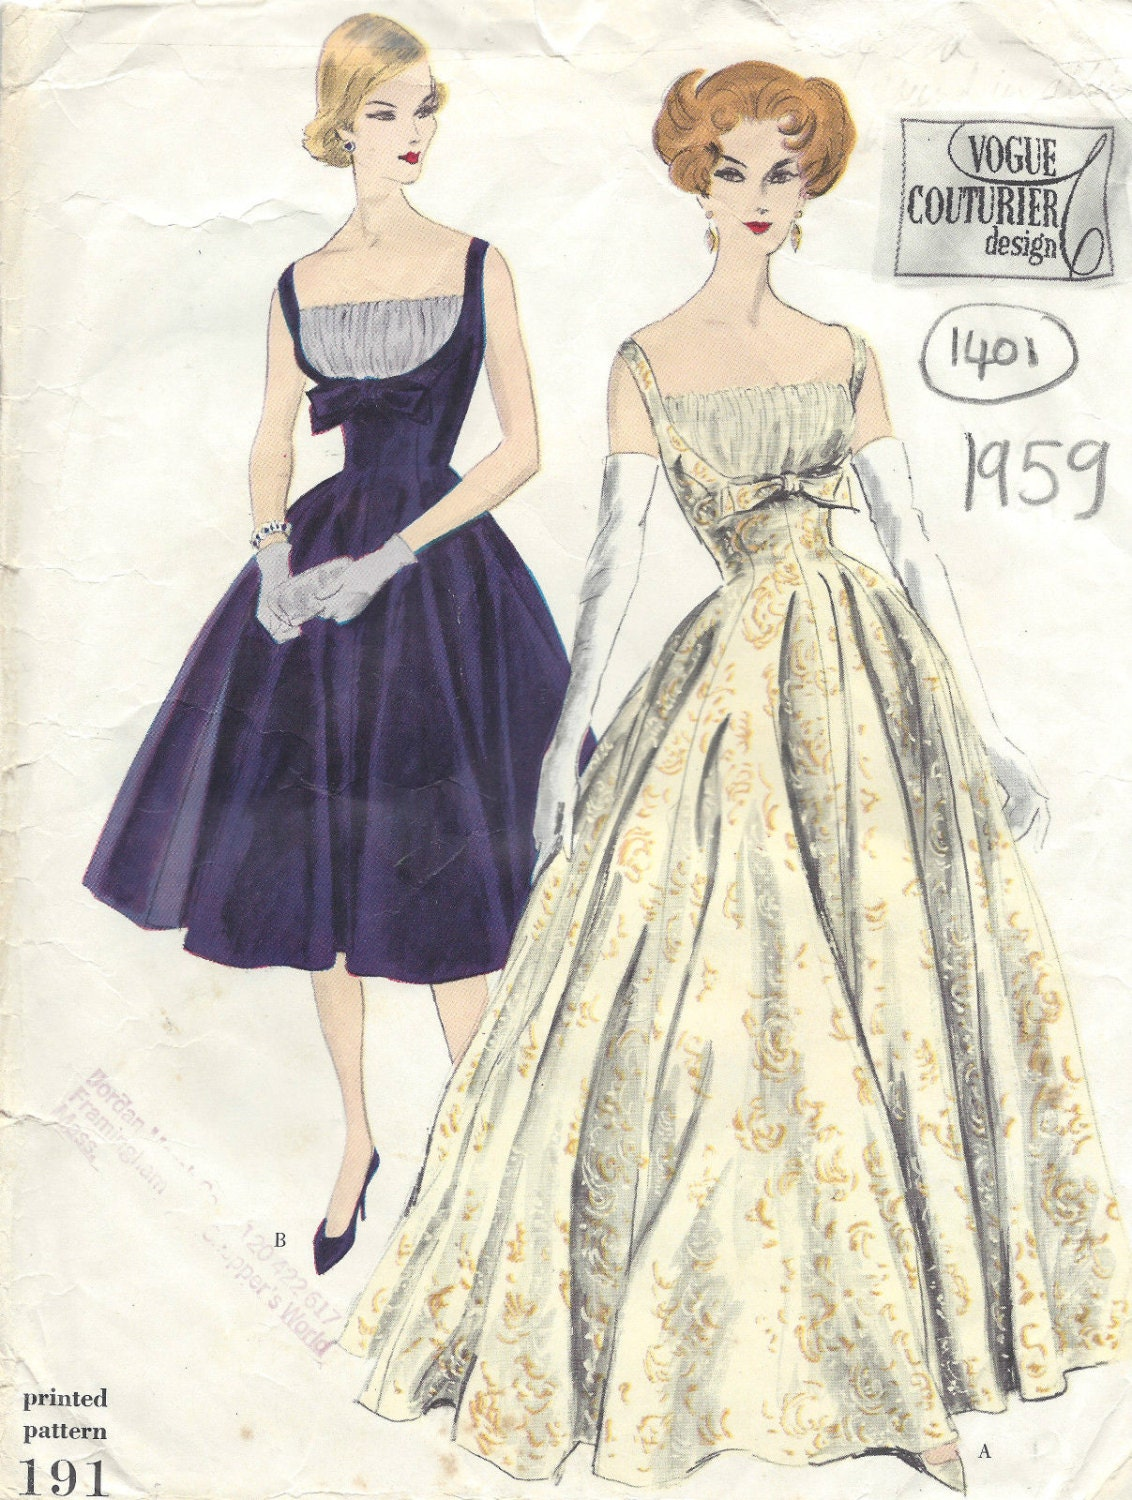 1959 Vintage VOGUE Sewing Pattern B32 DRESS (1405) Vogue 191 from ...